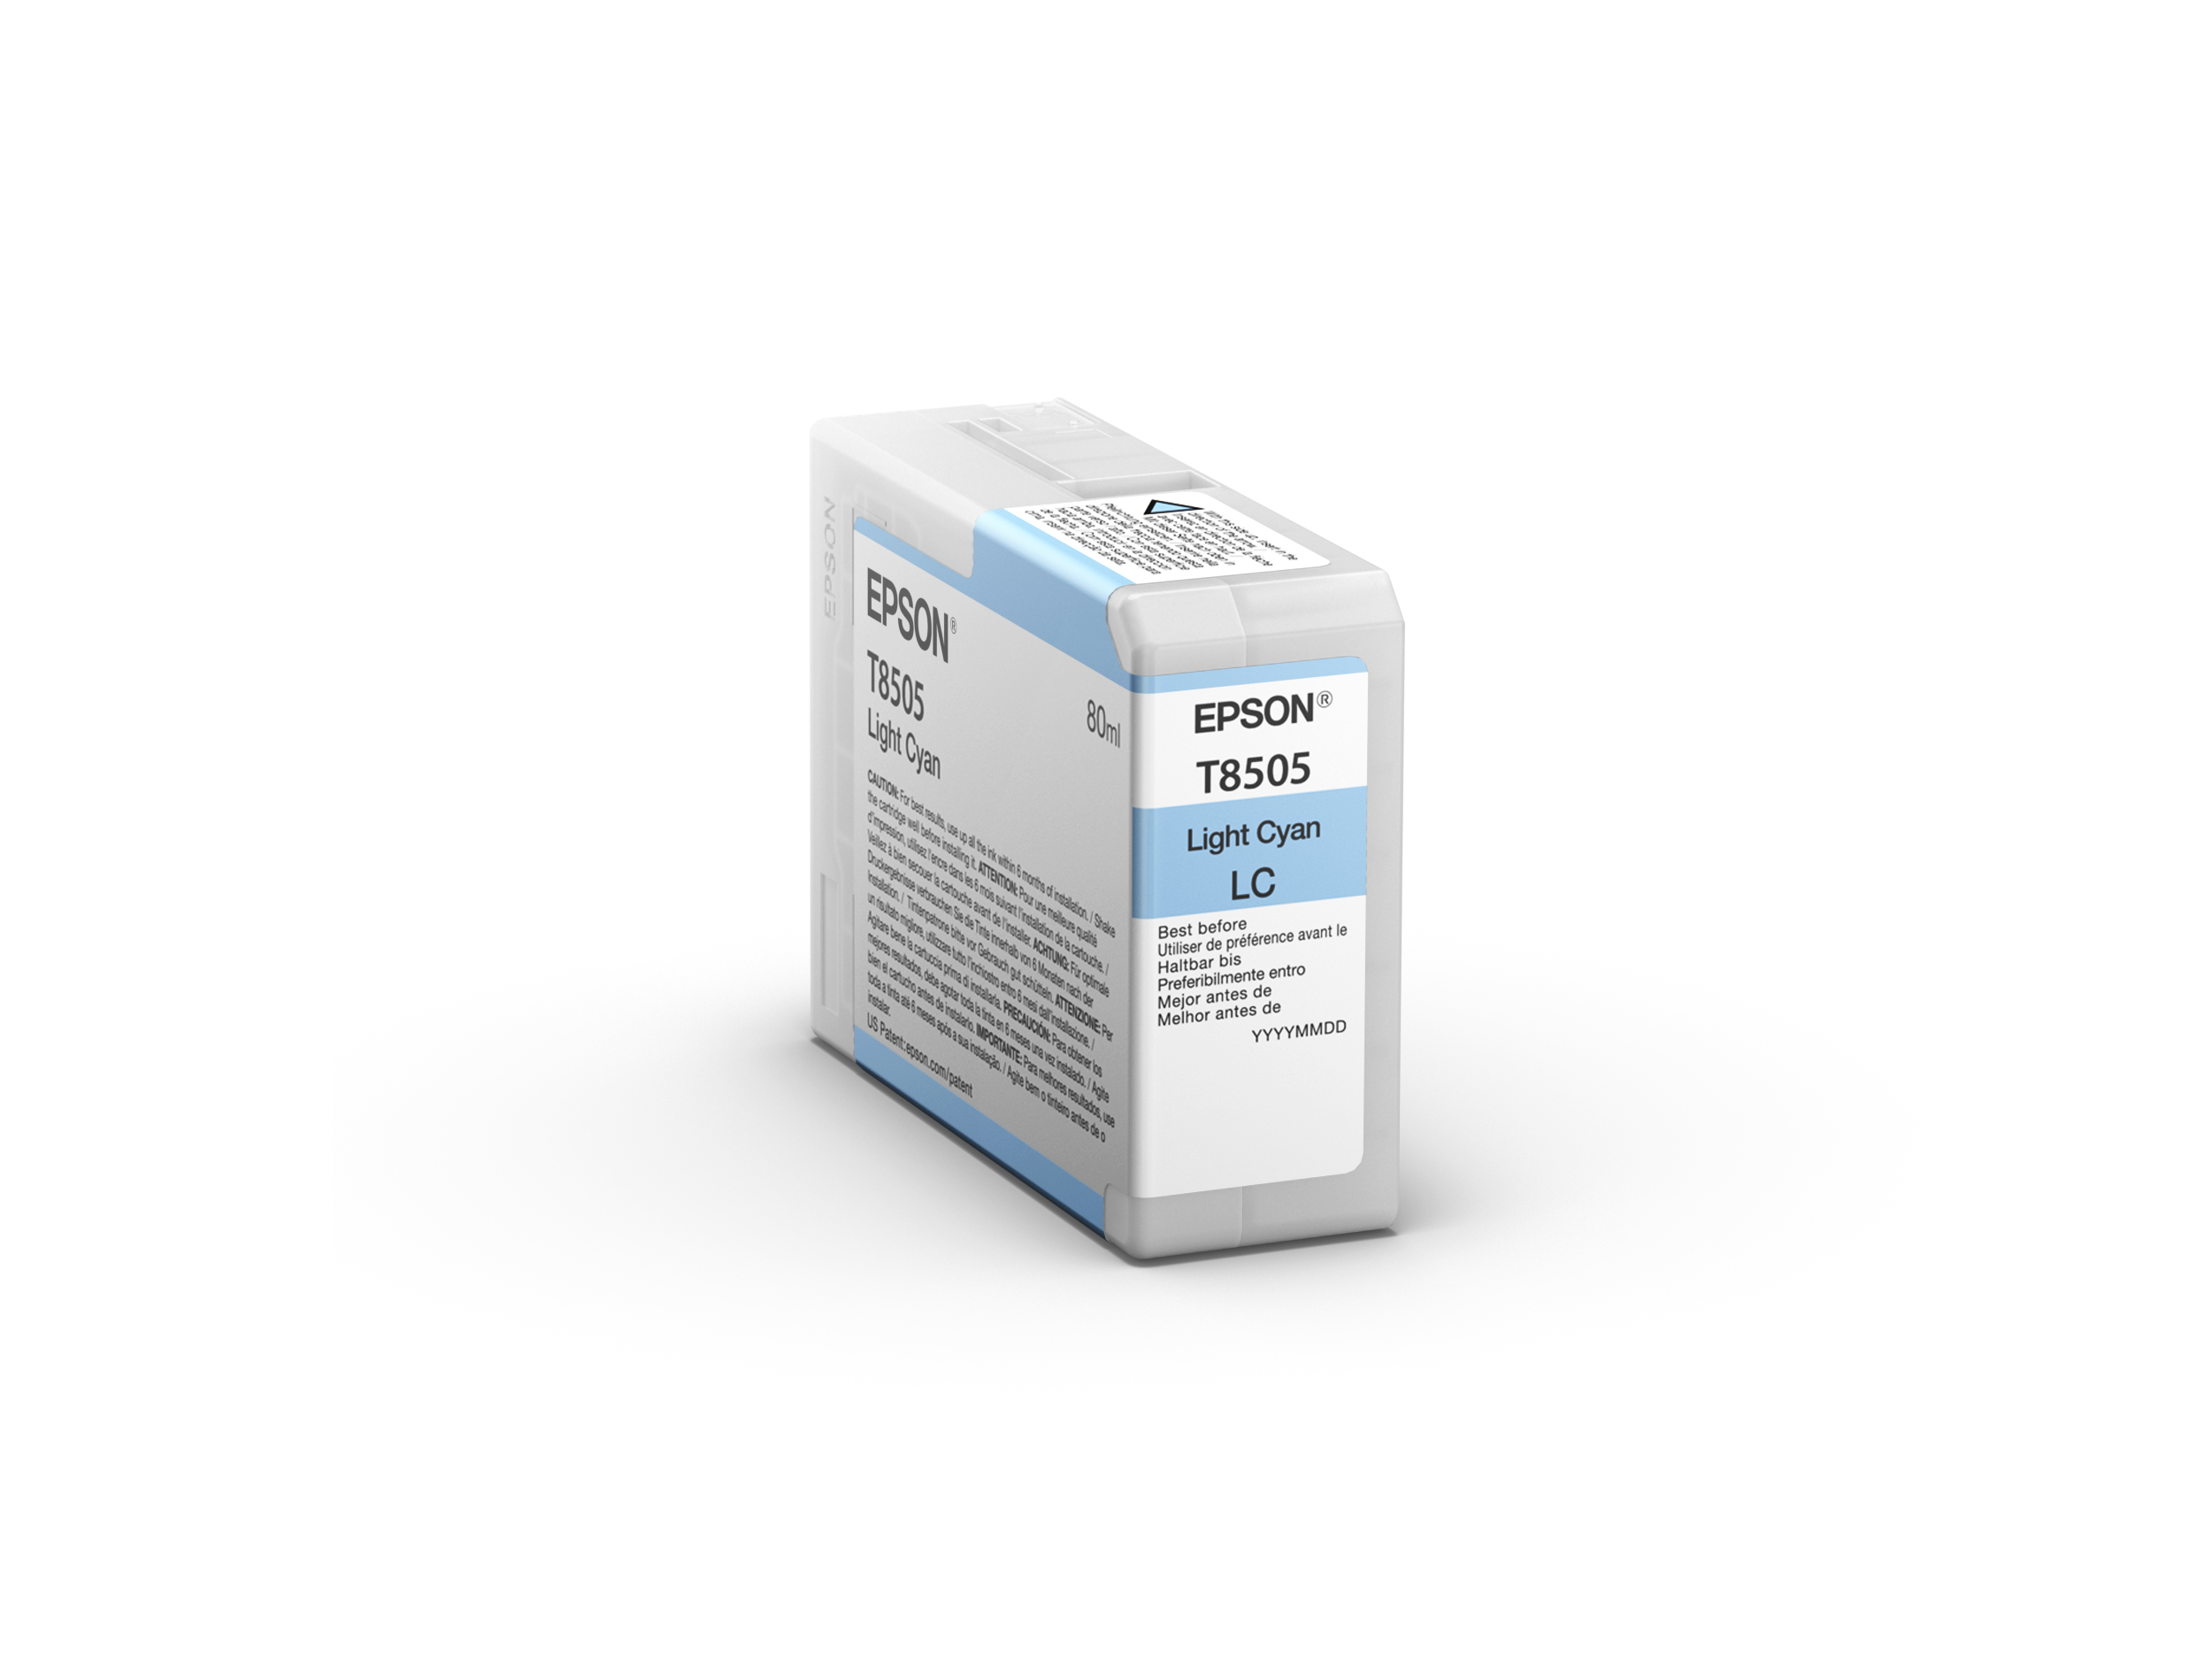 Epson SureColor SC-P800 Ultrachrome HD Ink LIGHT CYAN 80ml